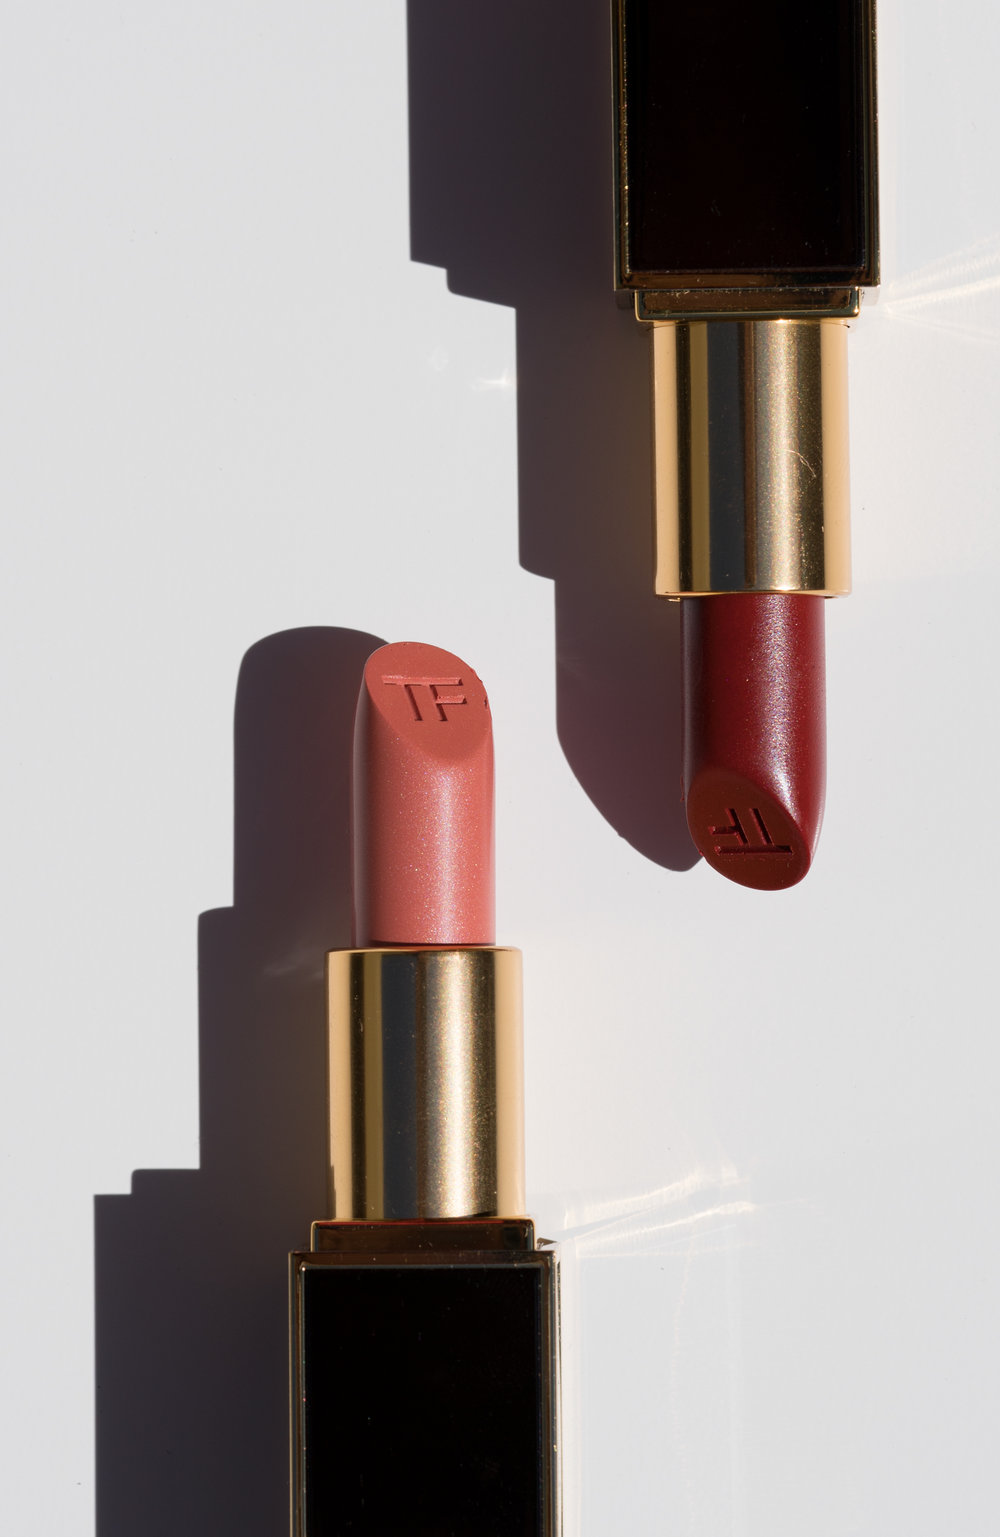 TOM-FORD-Lipstick-1.jpg